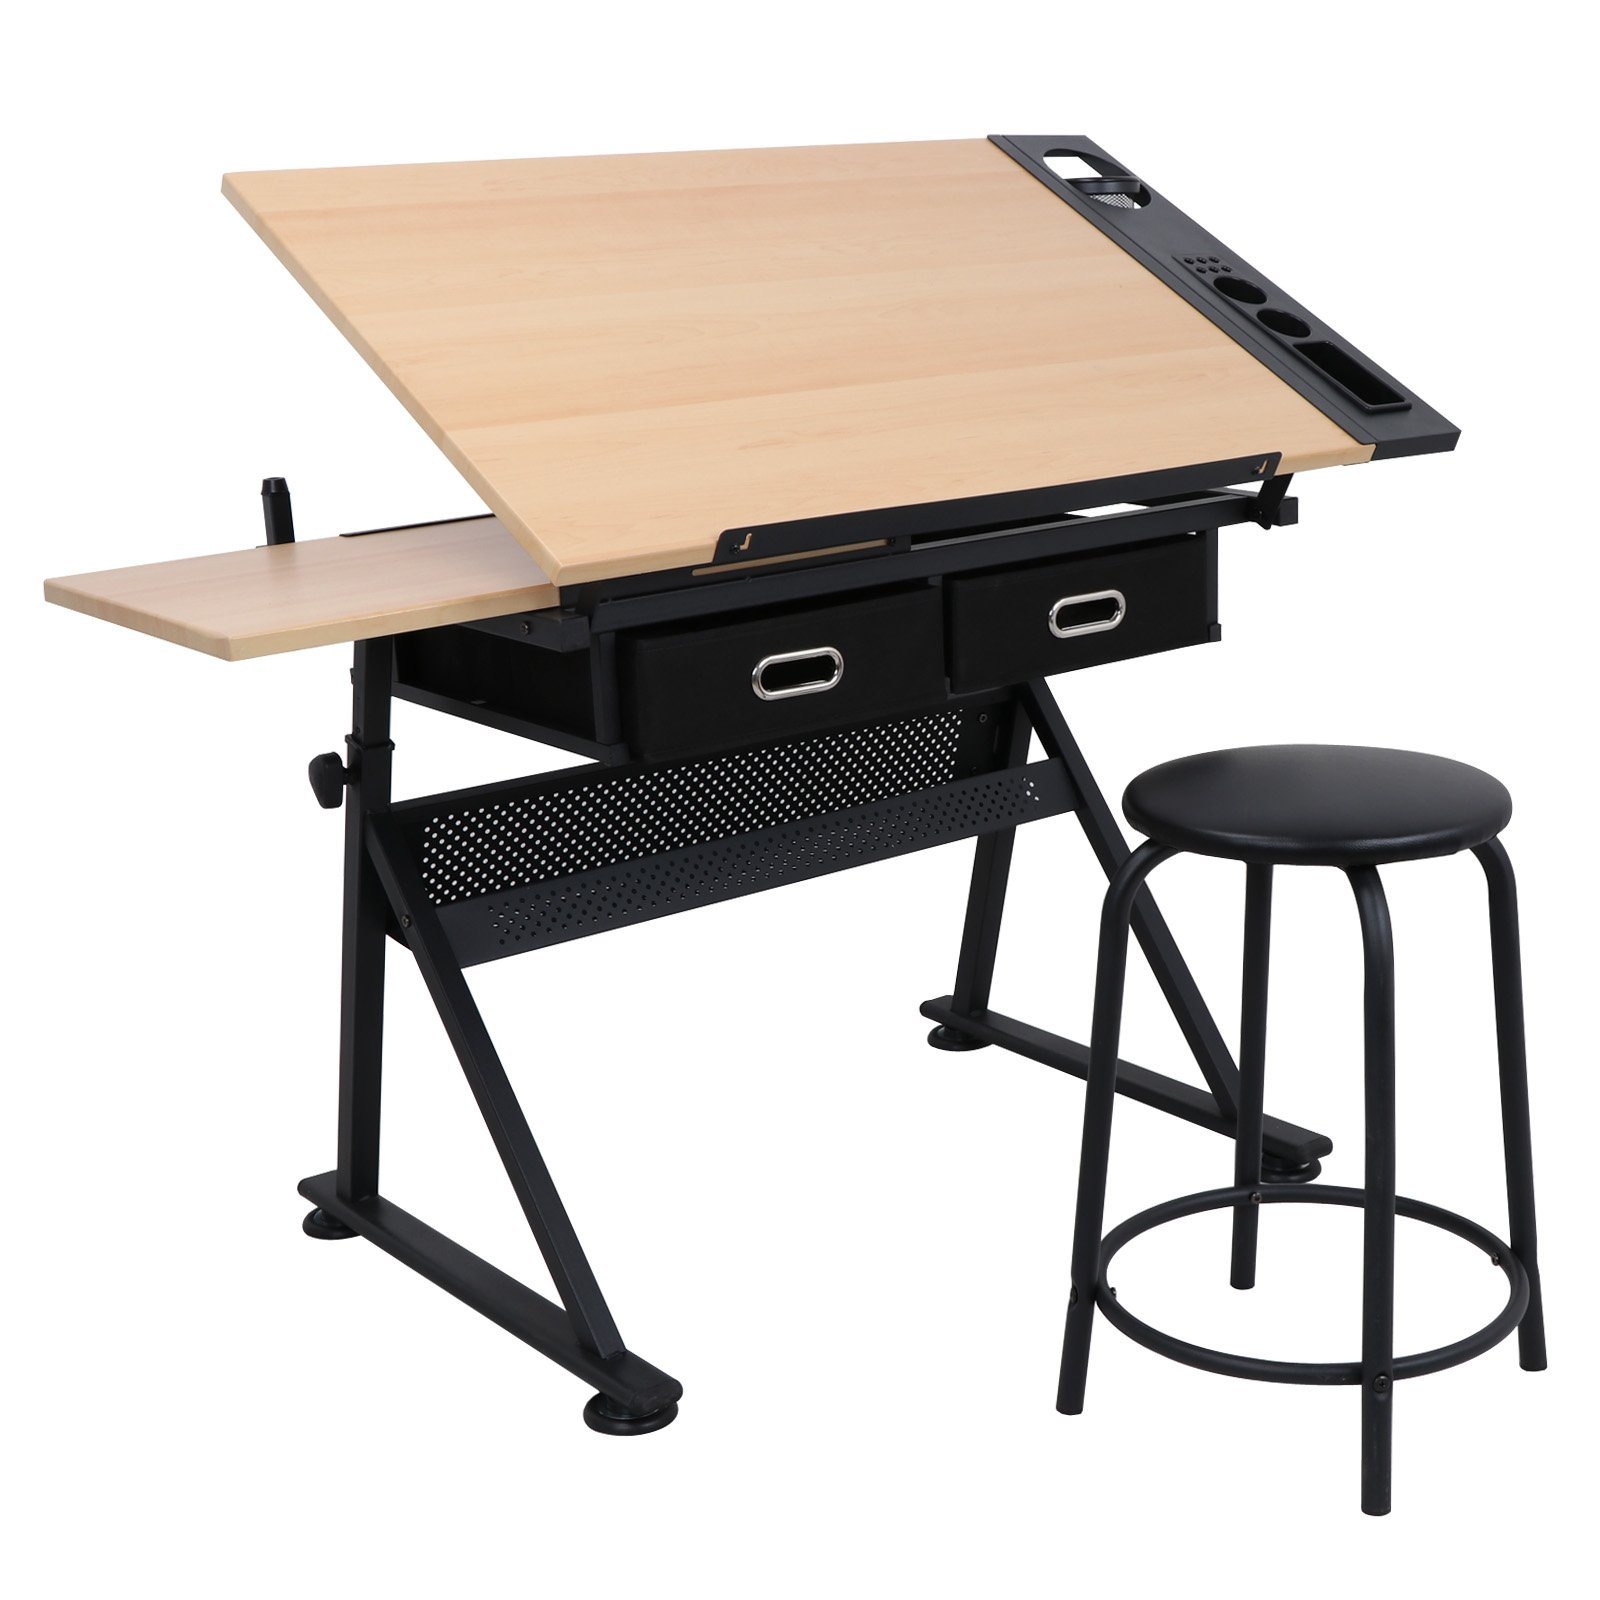 BBBuy Drafting Table Draft Station Art & Craft Drawing Desk Hobby Folding Adjustable Tiltable Tabletop w/Stool and Storage Drawer for Reading, Writing